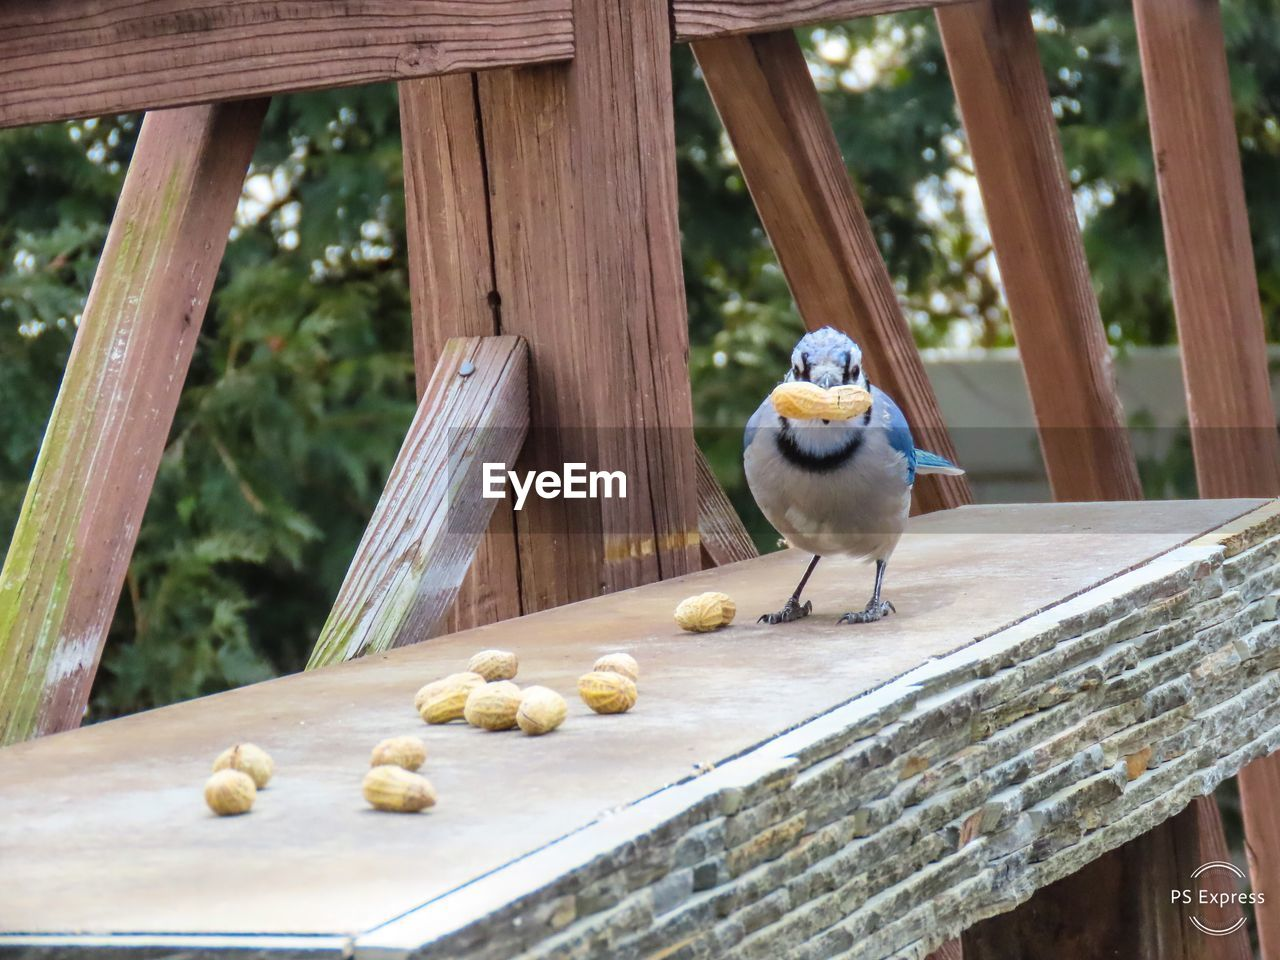 animal, wood - material, animal themes, animal wildlife, one animal, bird, animals in the wild, vertebrate, day, perching, no people, focus on foreground, food, outdoors, close-up, nature, food and drink, built structure, railing, zoology, tray